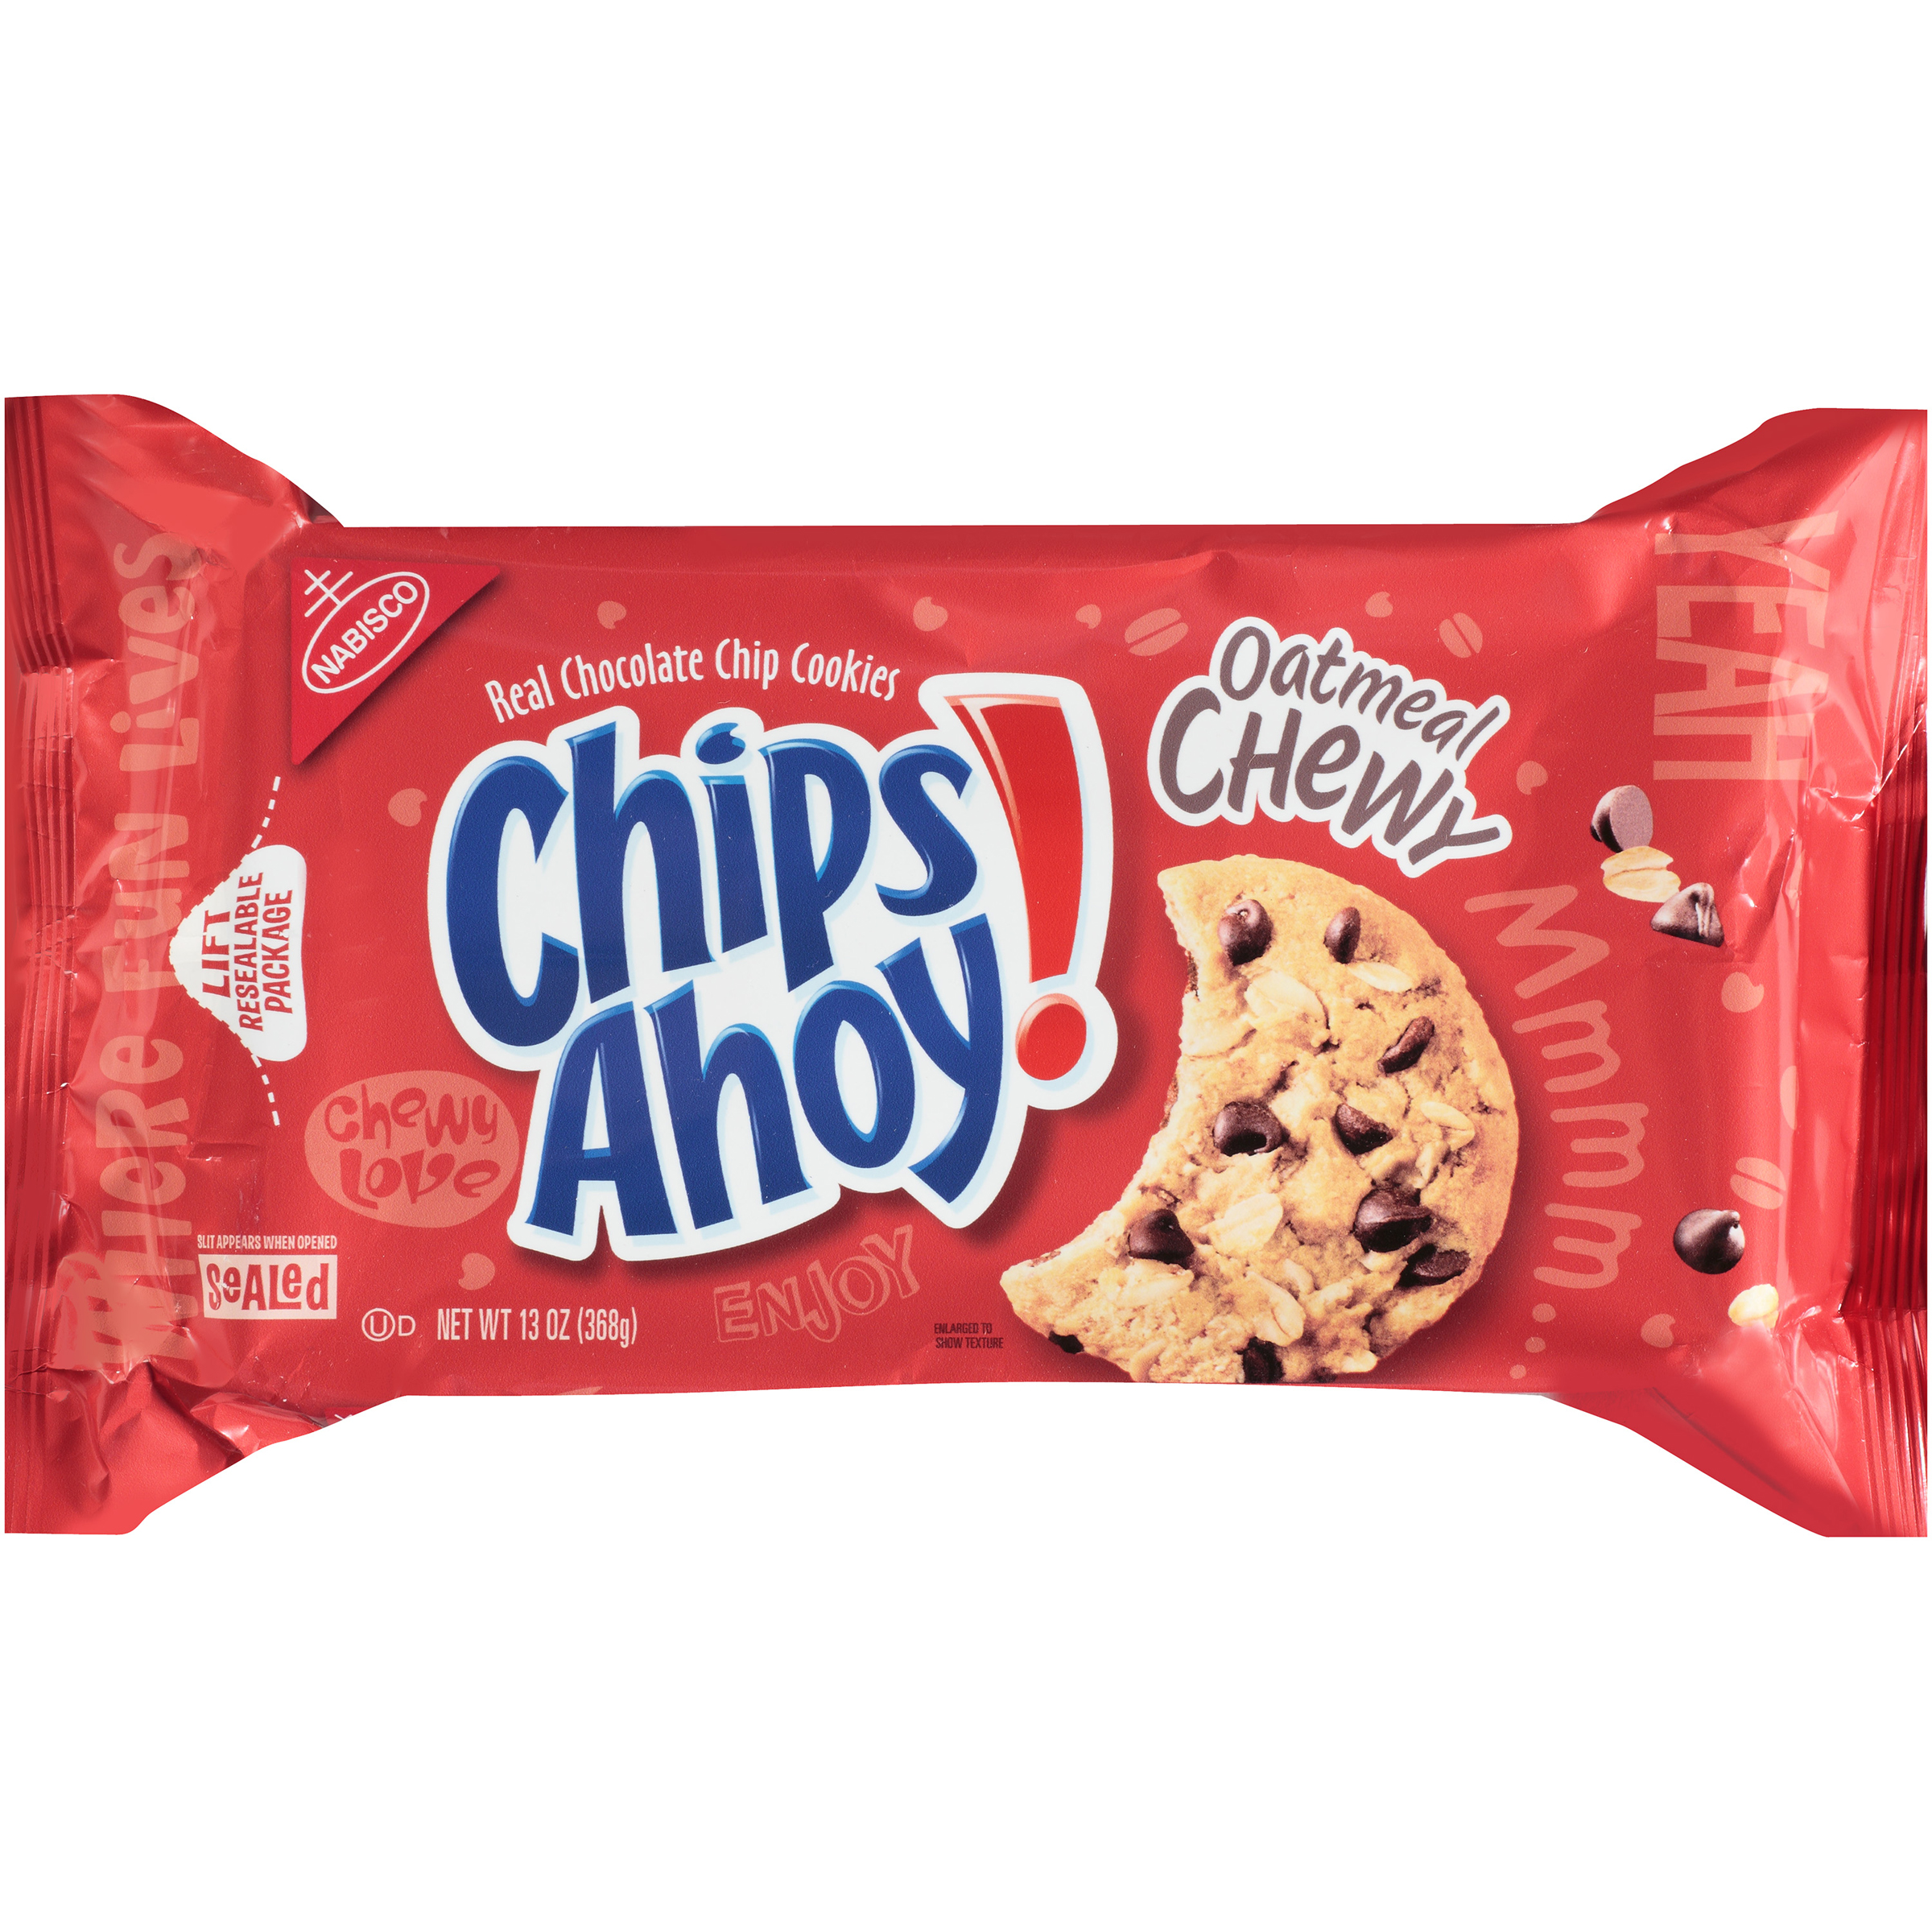 Nabisco Chips Ahoy! Chocolate Chip & Oatmeal Chewy Cookies